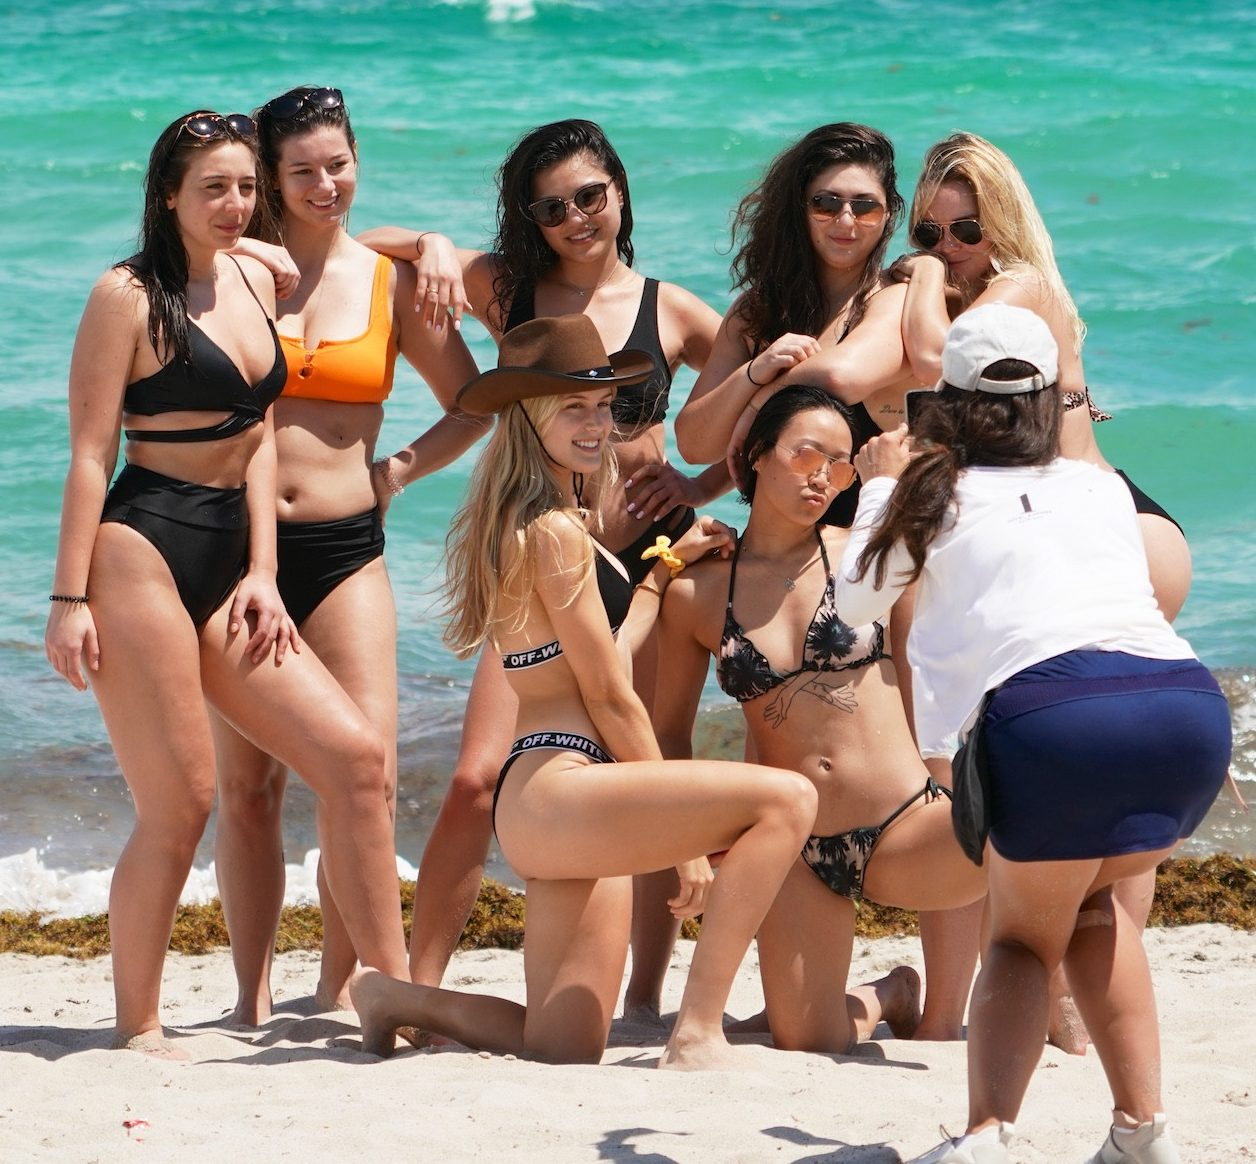 The beach posse pose as they relax on the perfect sand in Miami, Florida